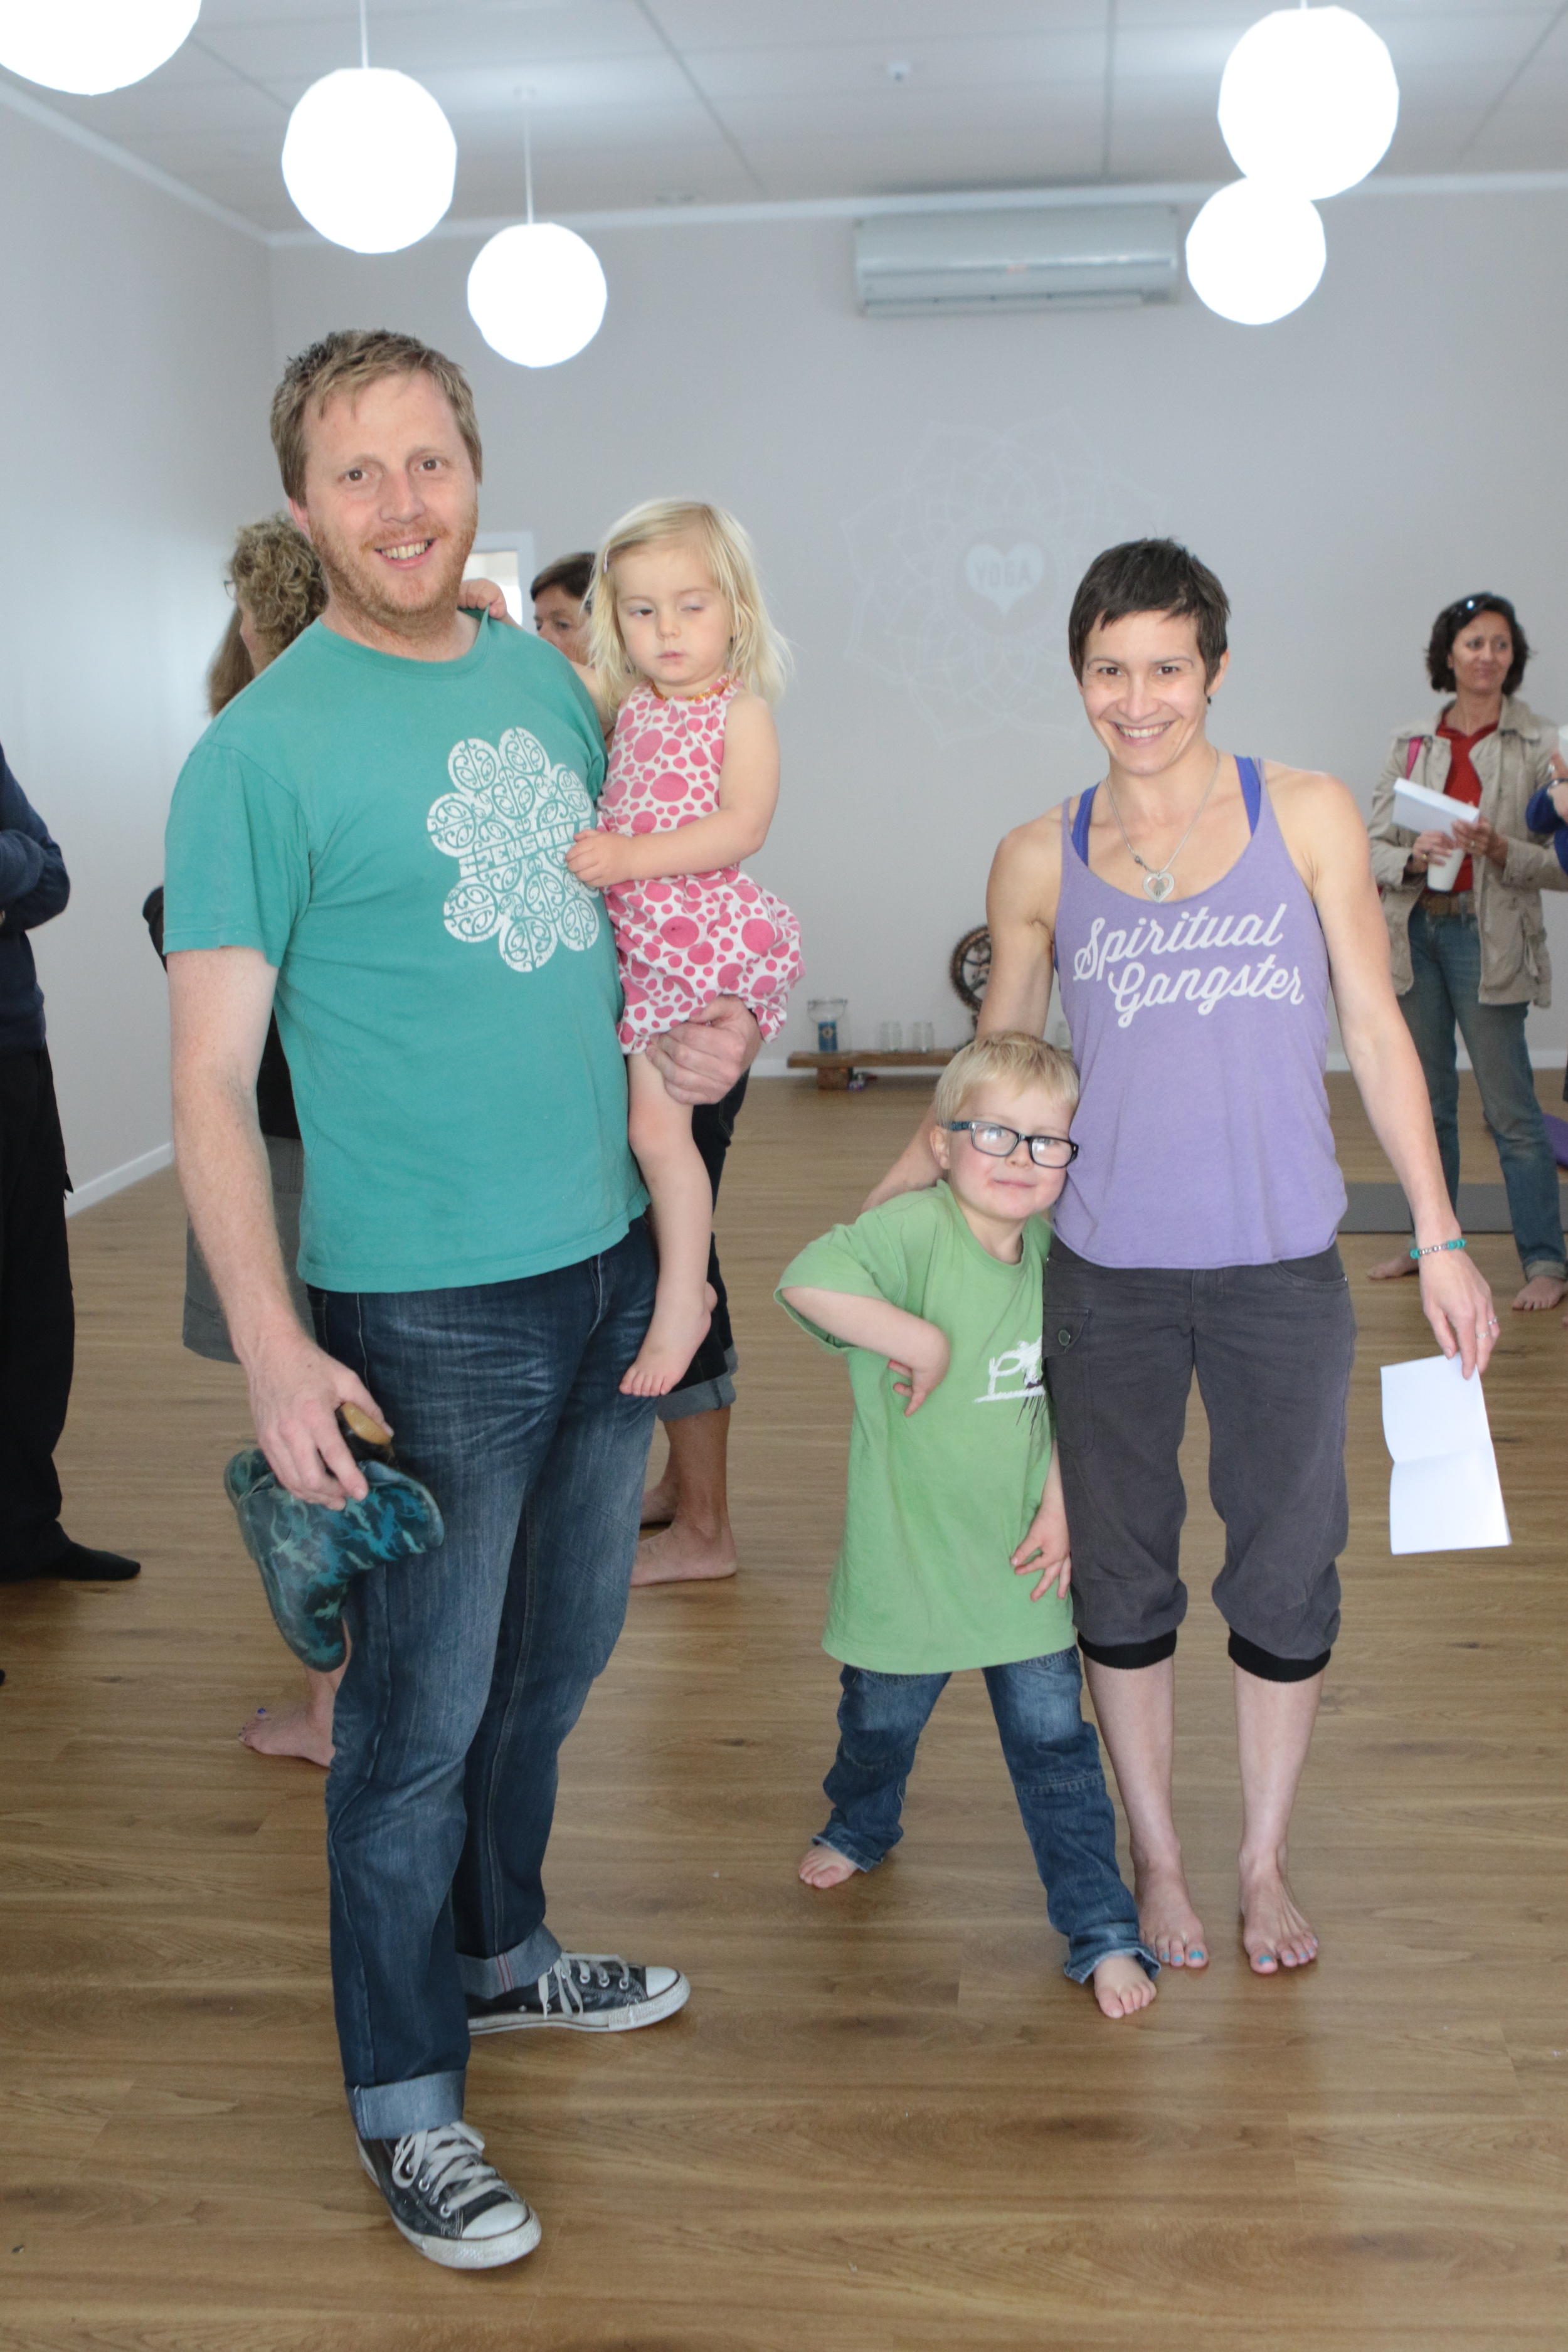 At our opening, just some of my Love Yoga family :-)